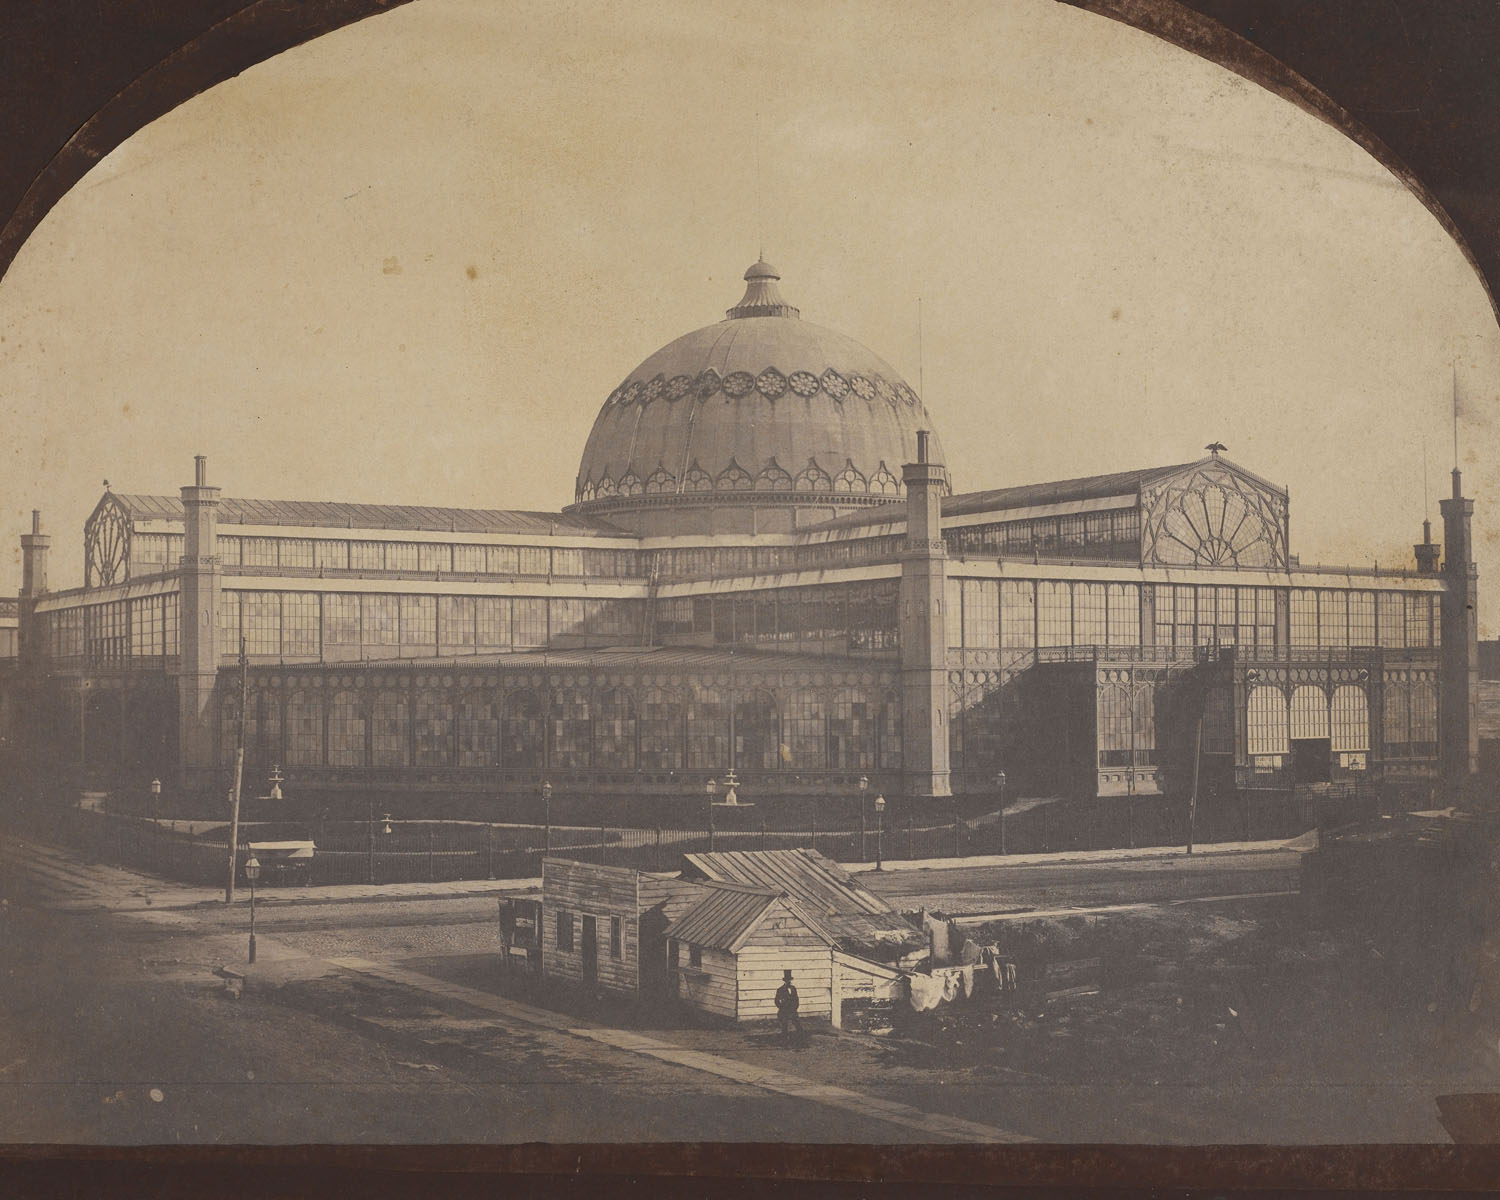 A rare photograph of the New York Crystal Palace by Victor Prevost. Courtesy Avery Architectural & Fine Arts Library, Columbia University